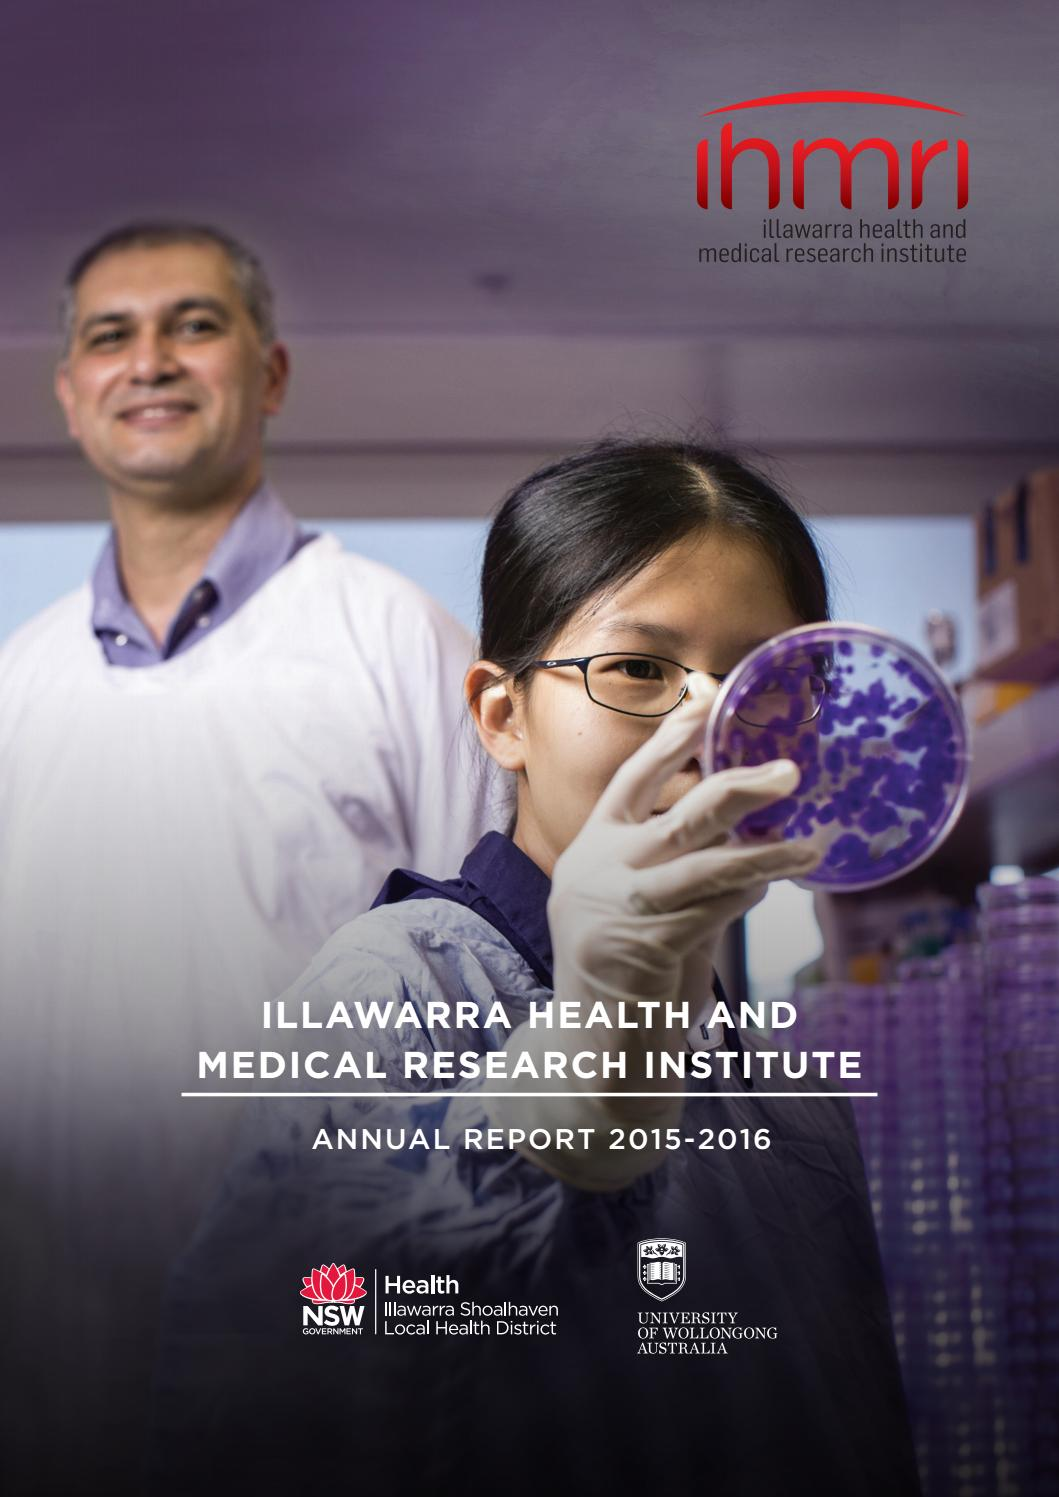 2015-16 Annual Report - Illawarra Health and Medical Research ...